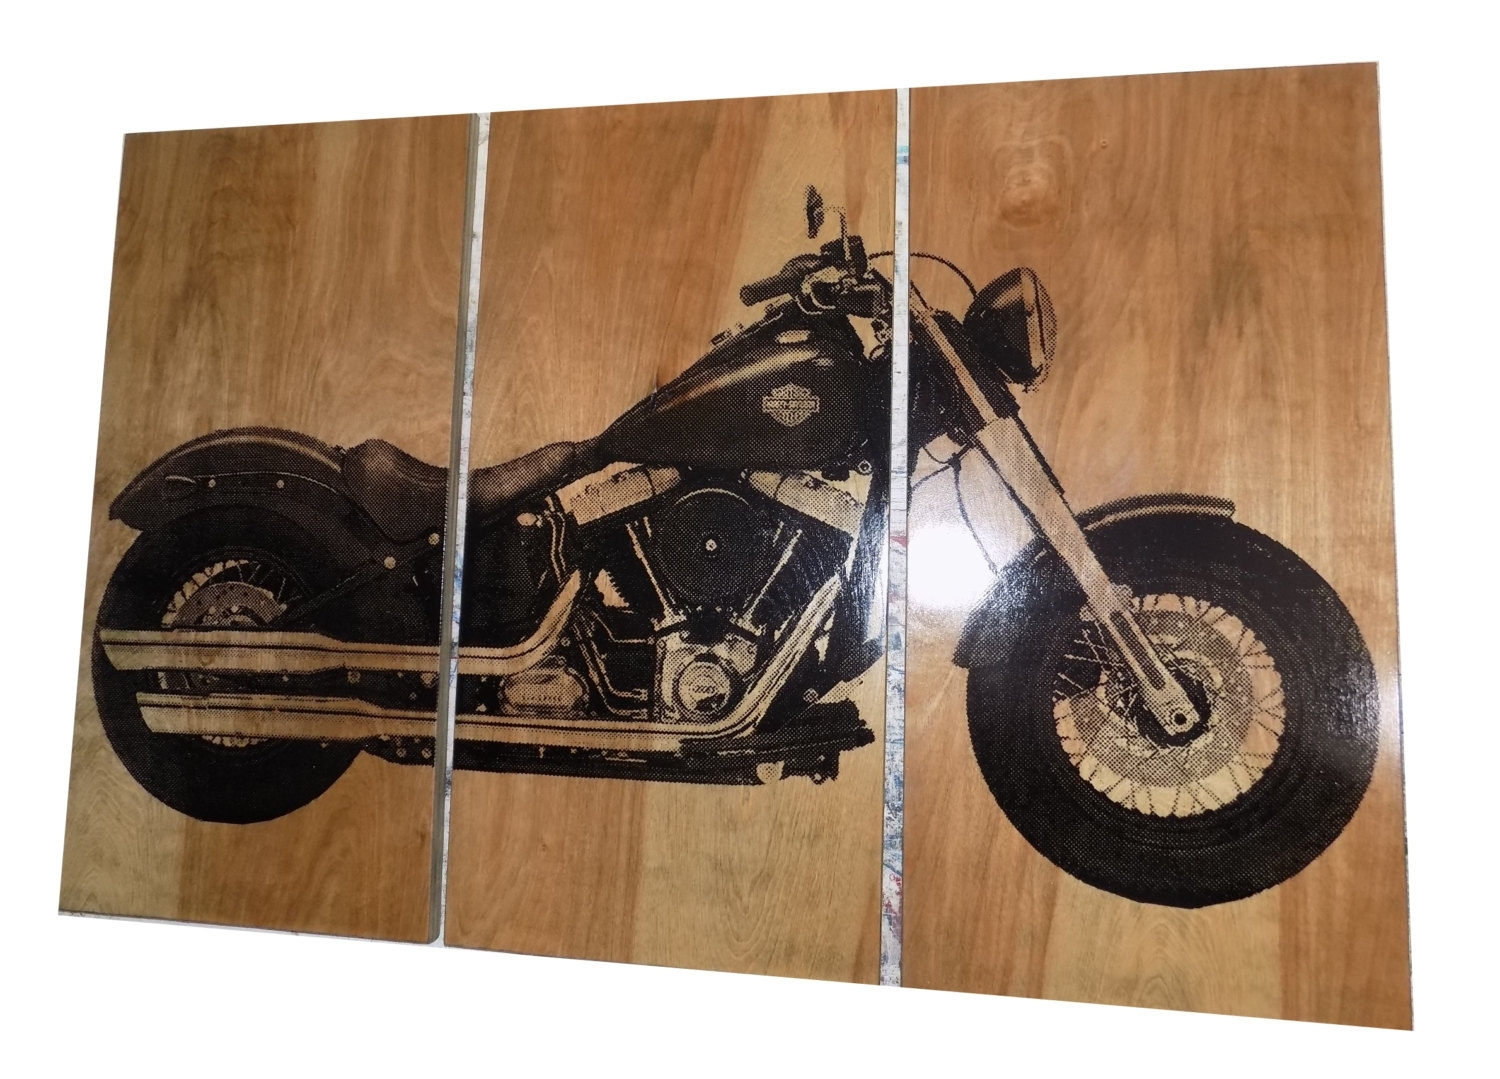 Harley Davidson Soft Tail Nice Harley Davidson Wall Art – Prix Dalle In Most Current Harley Davidson Wall Art (View 9 of 20)